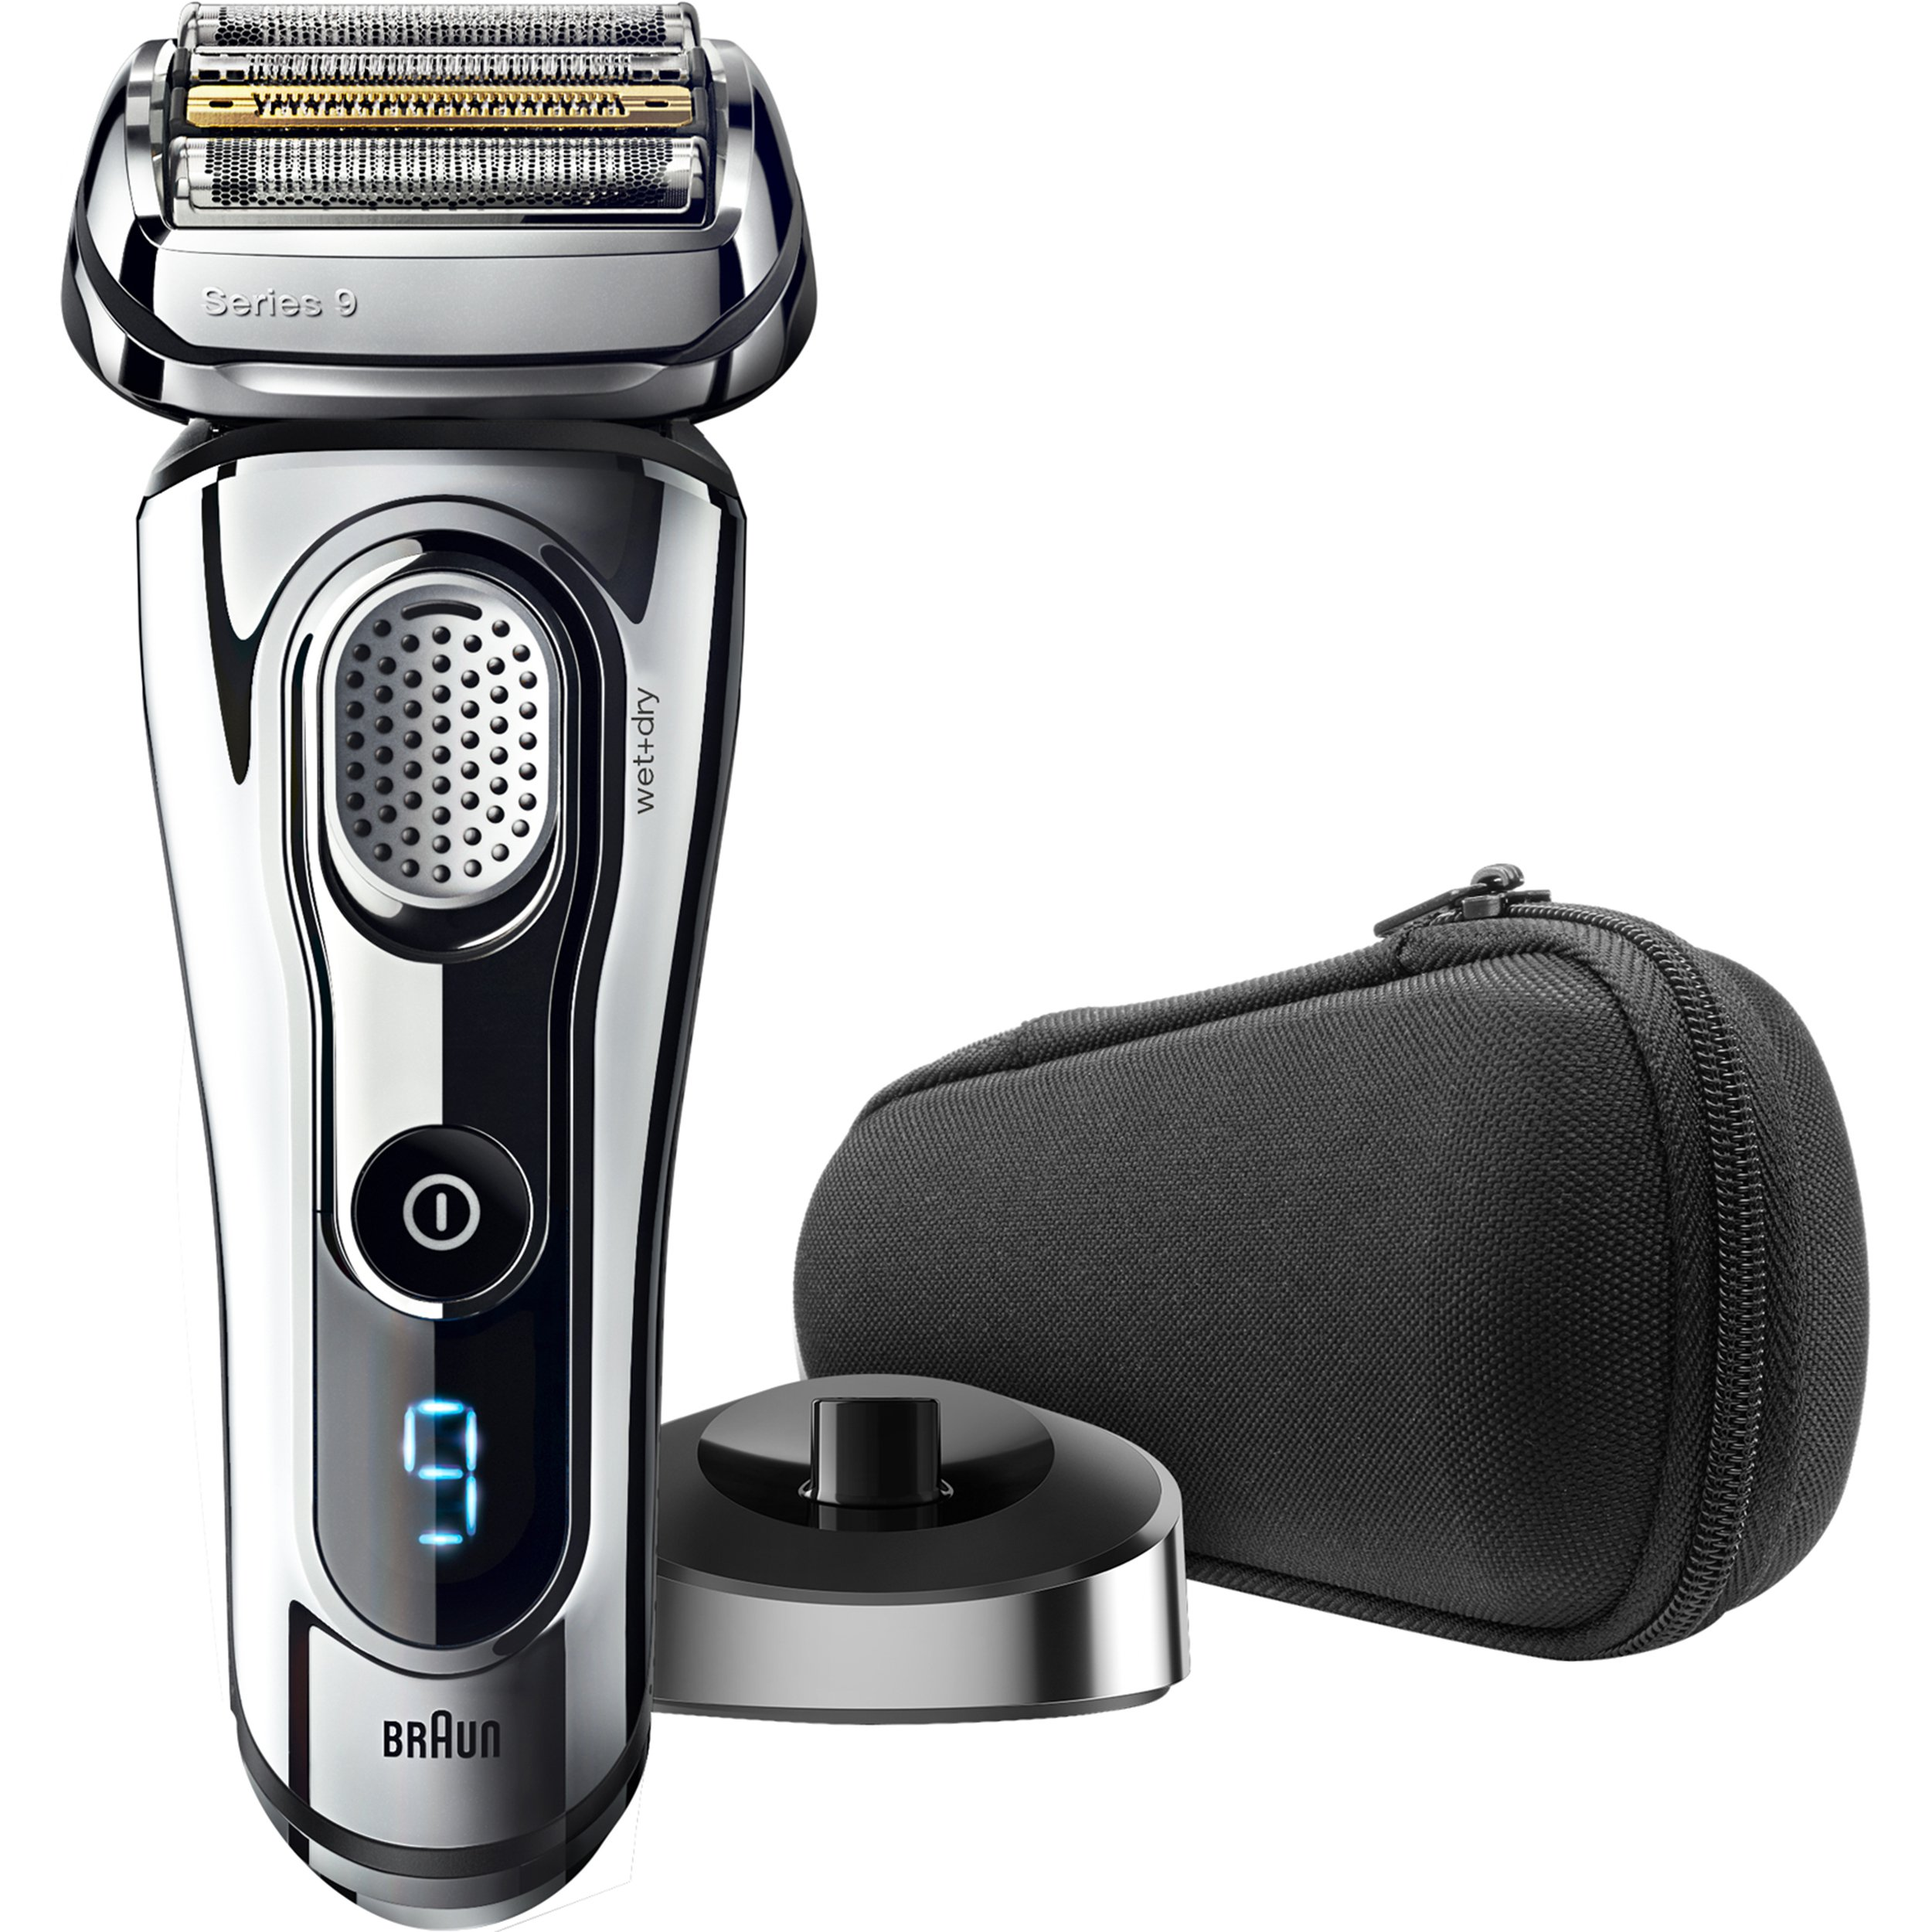 Braun Electric Razor for Men, Series 9 9293s Electric Shaver with Precision Trimmer, Rechargeable, Wet & Dry Foil Shaver and Travel Case